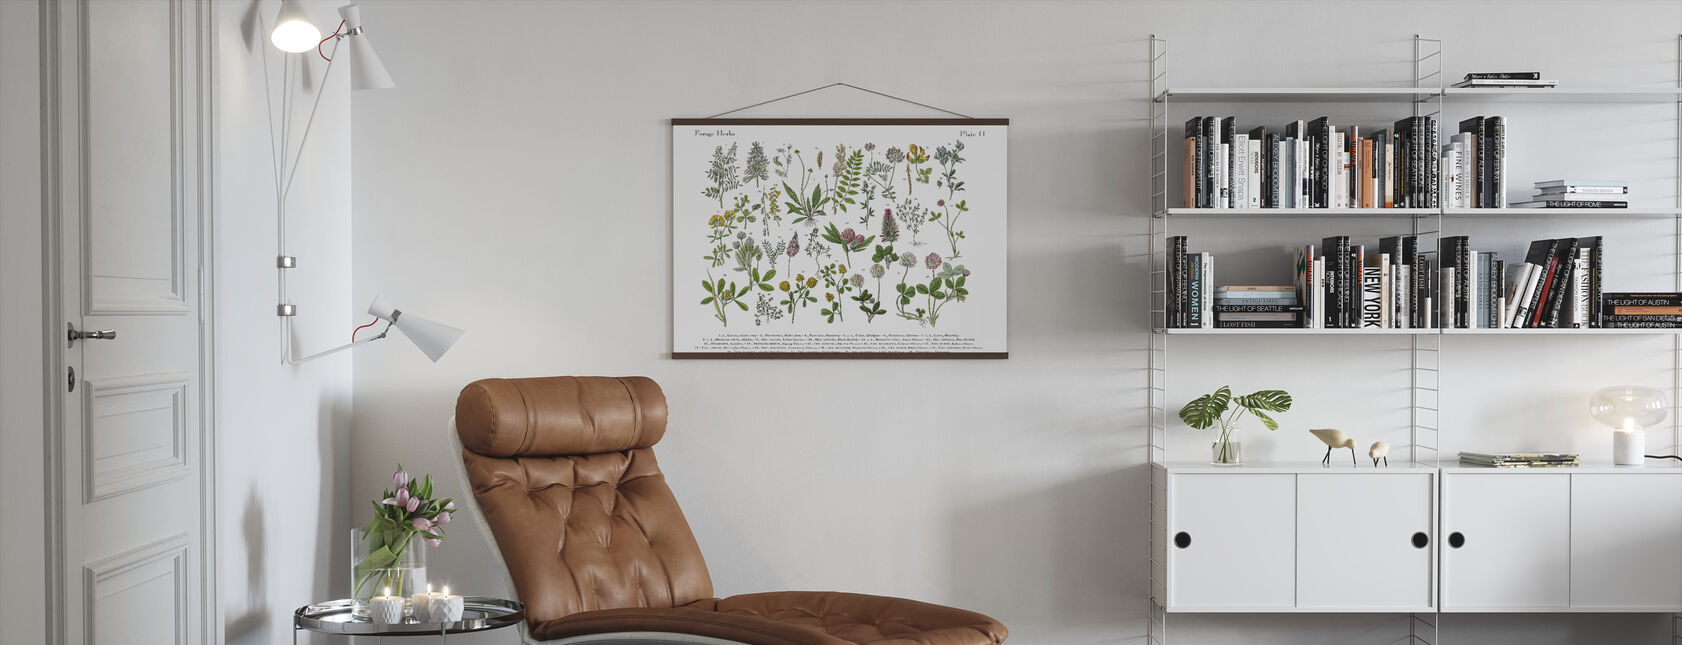 Herbs and Spices - Poster - Living Room